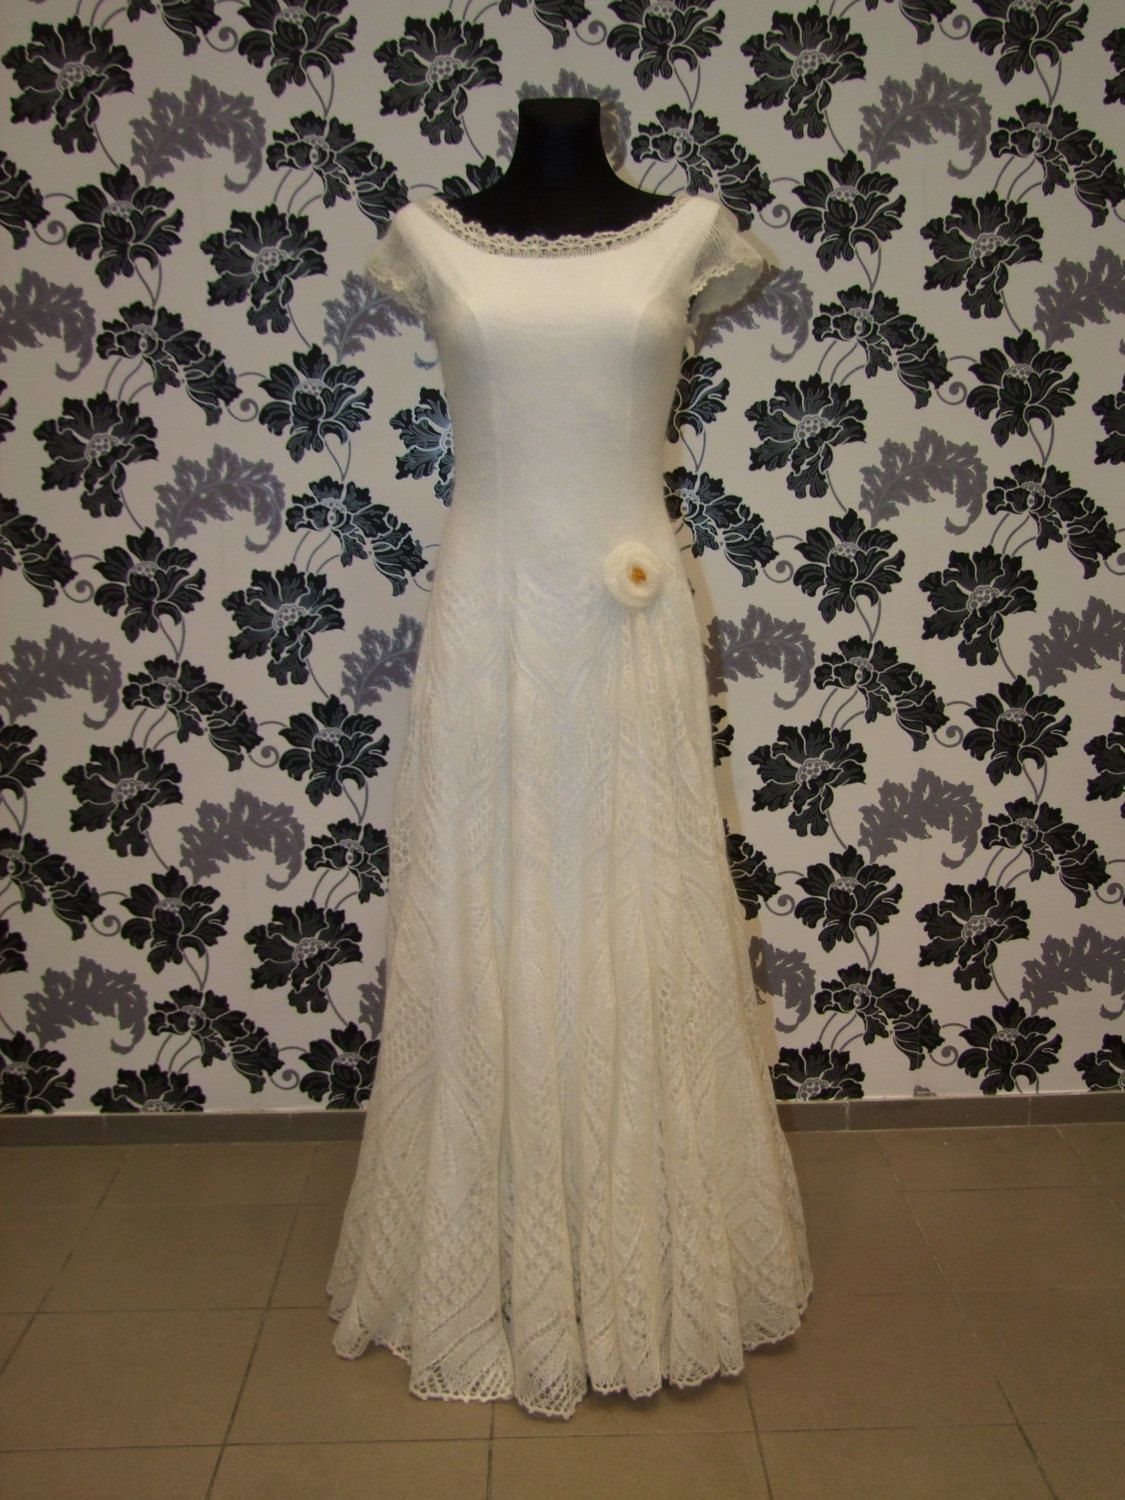 Made to order silkmohair knitted wedding dress any by laiminga